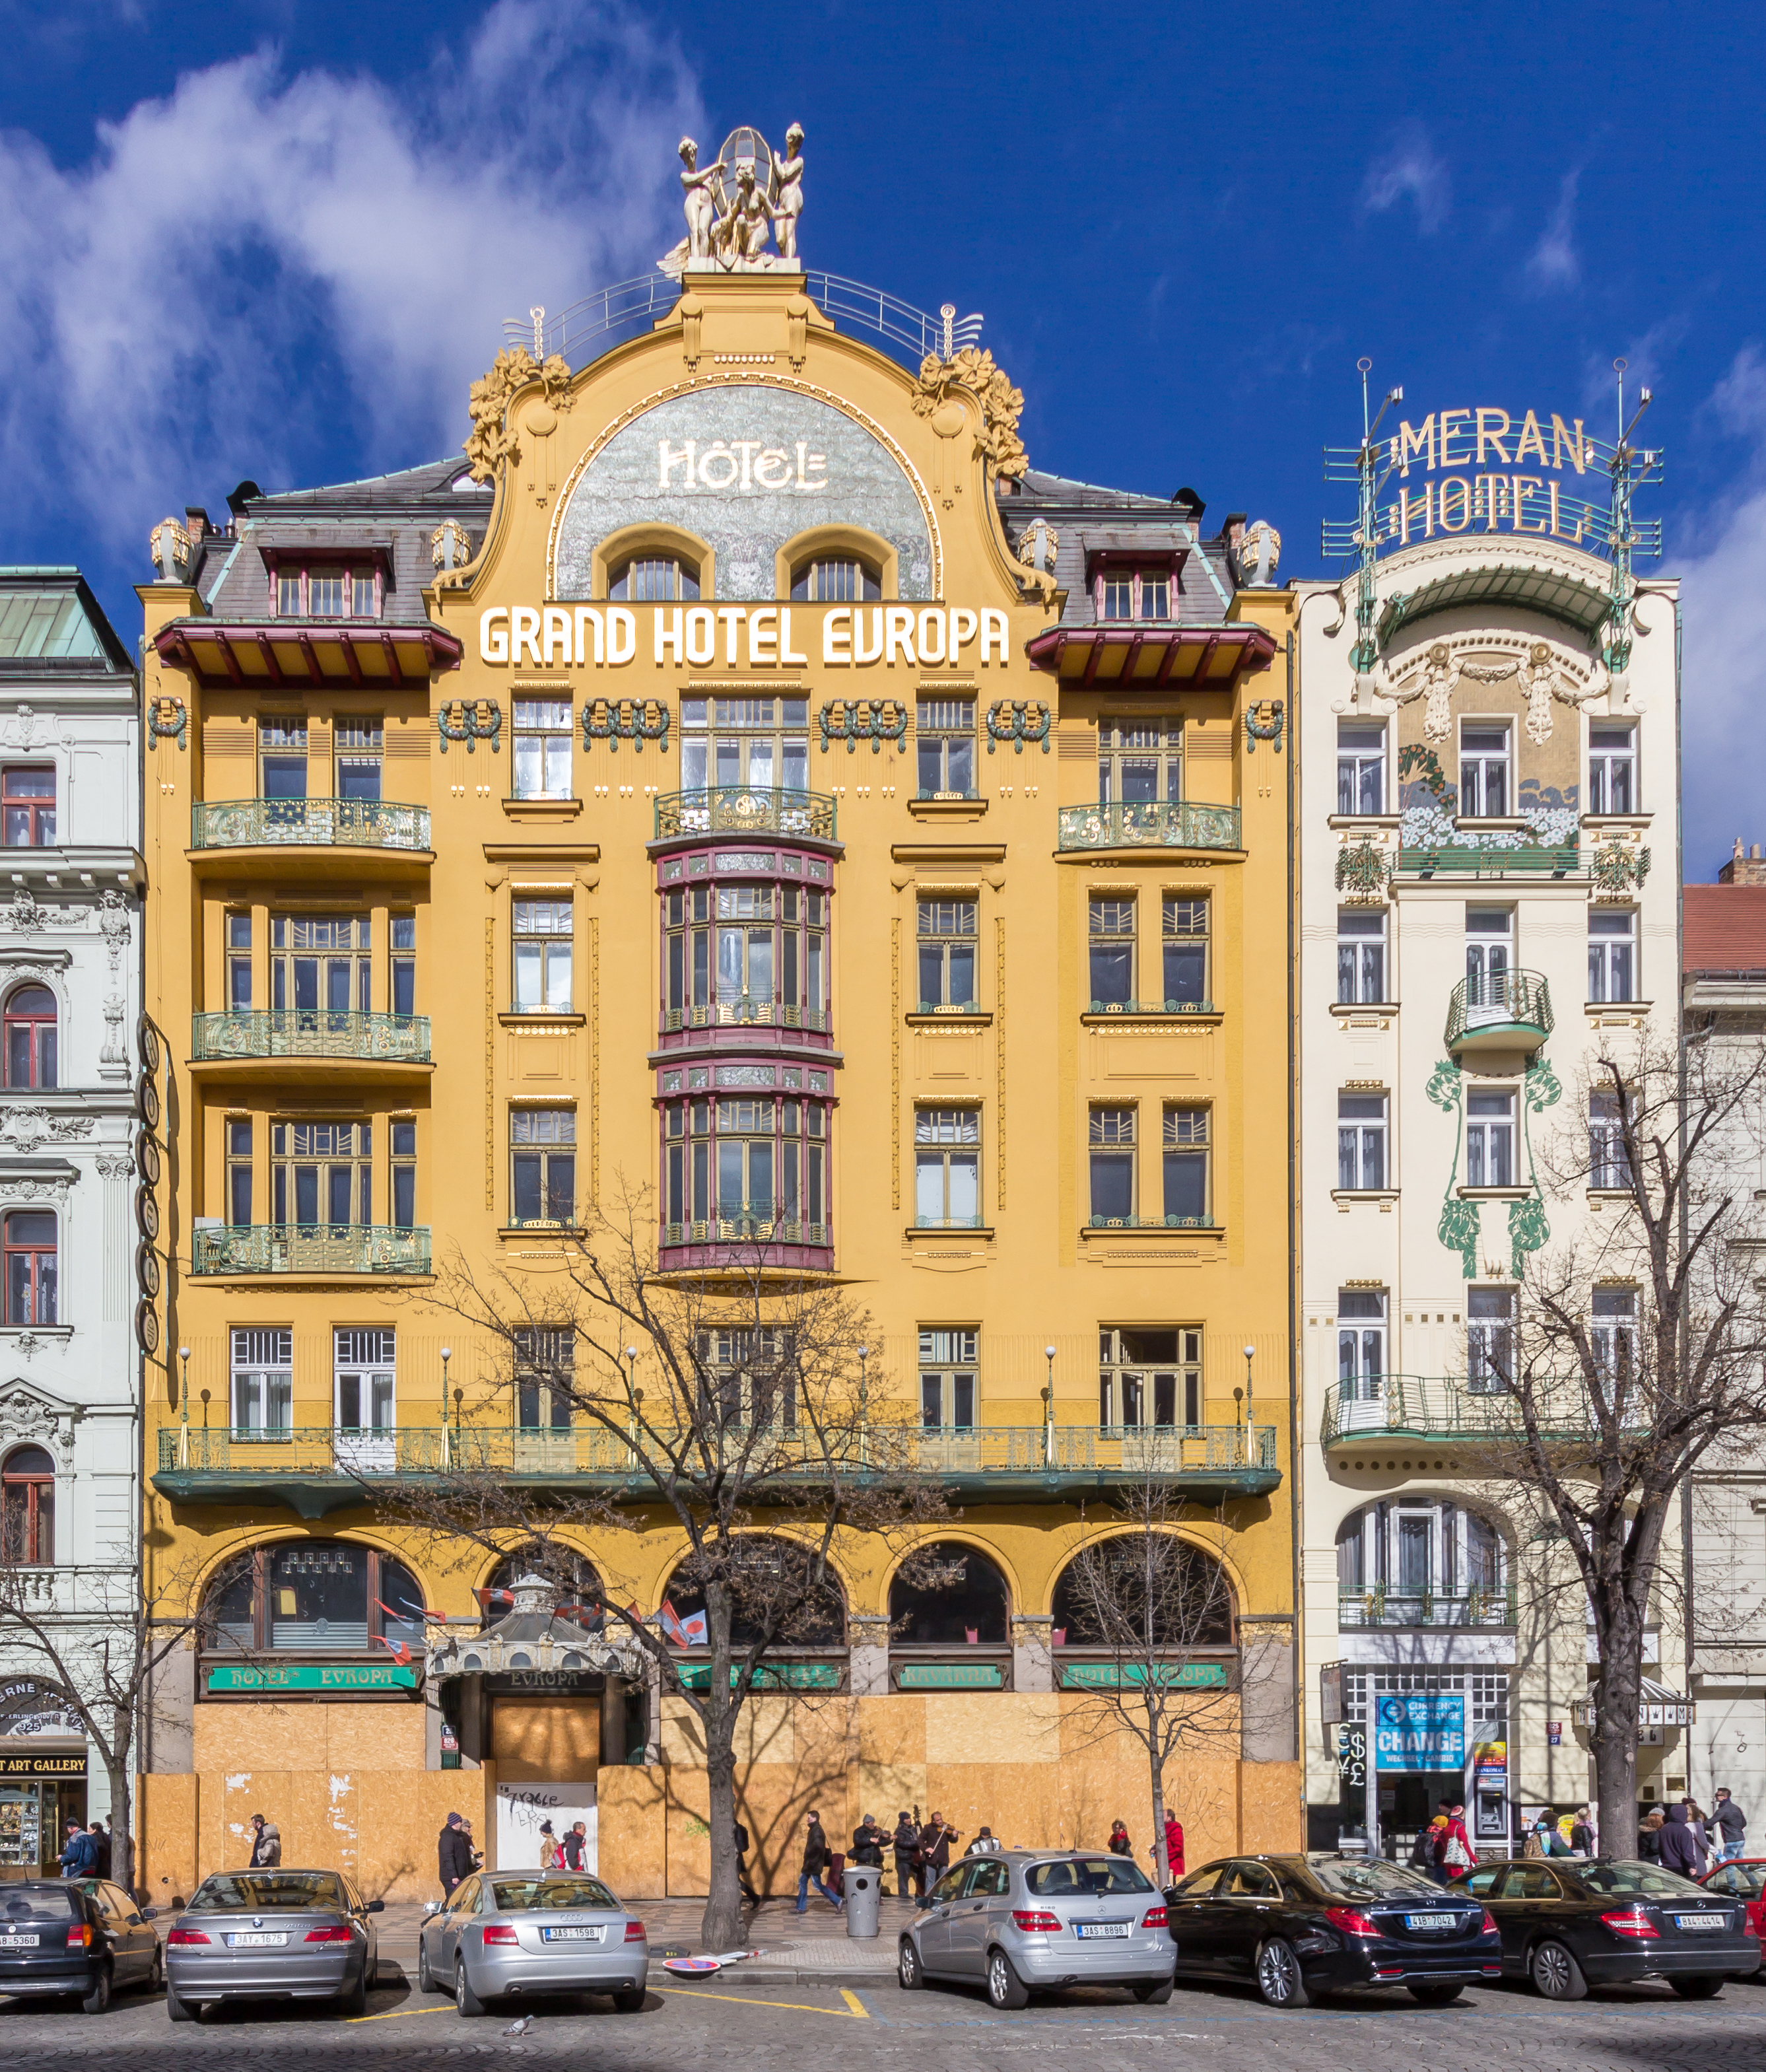 File grand hotel europa and meran hotel prague for Europe hotel prague